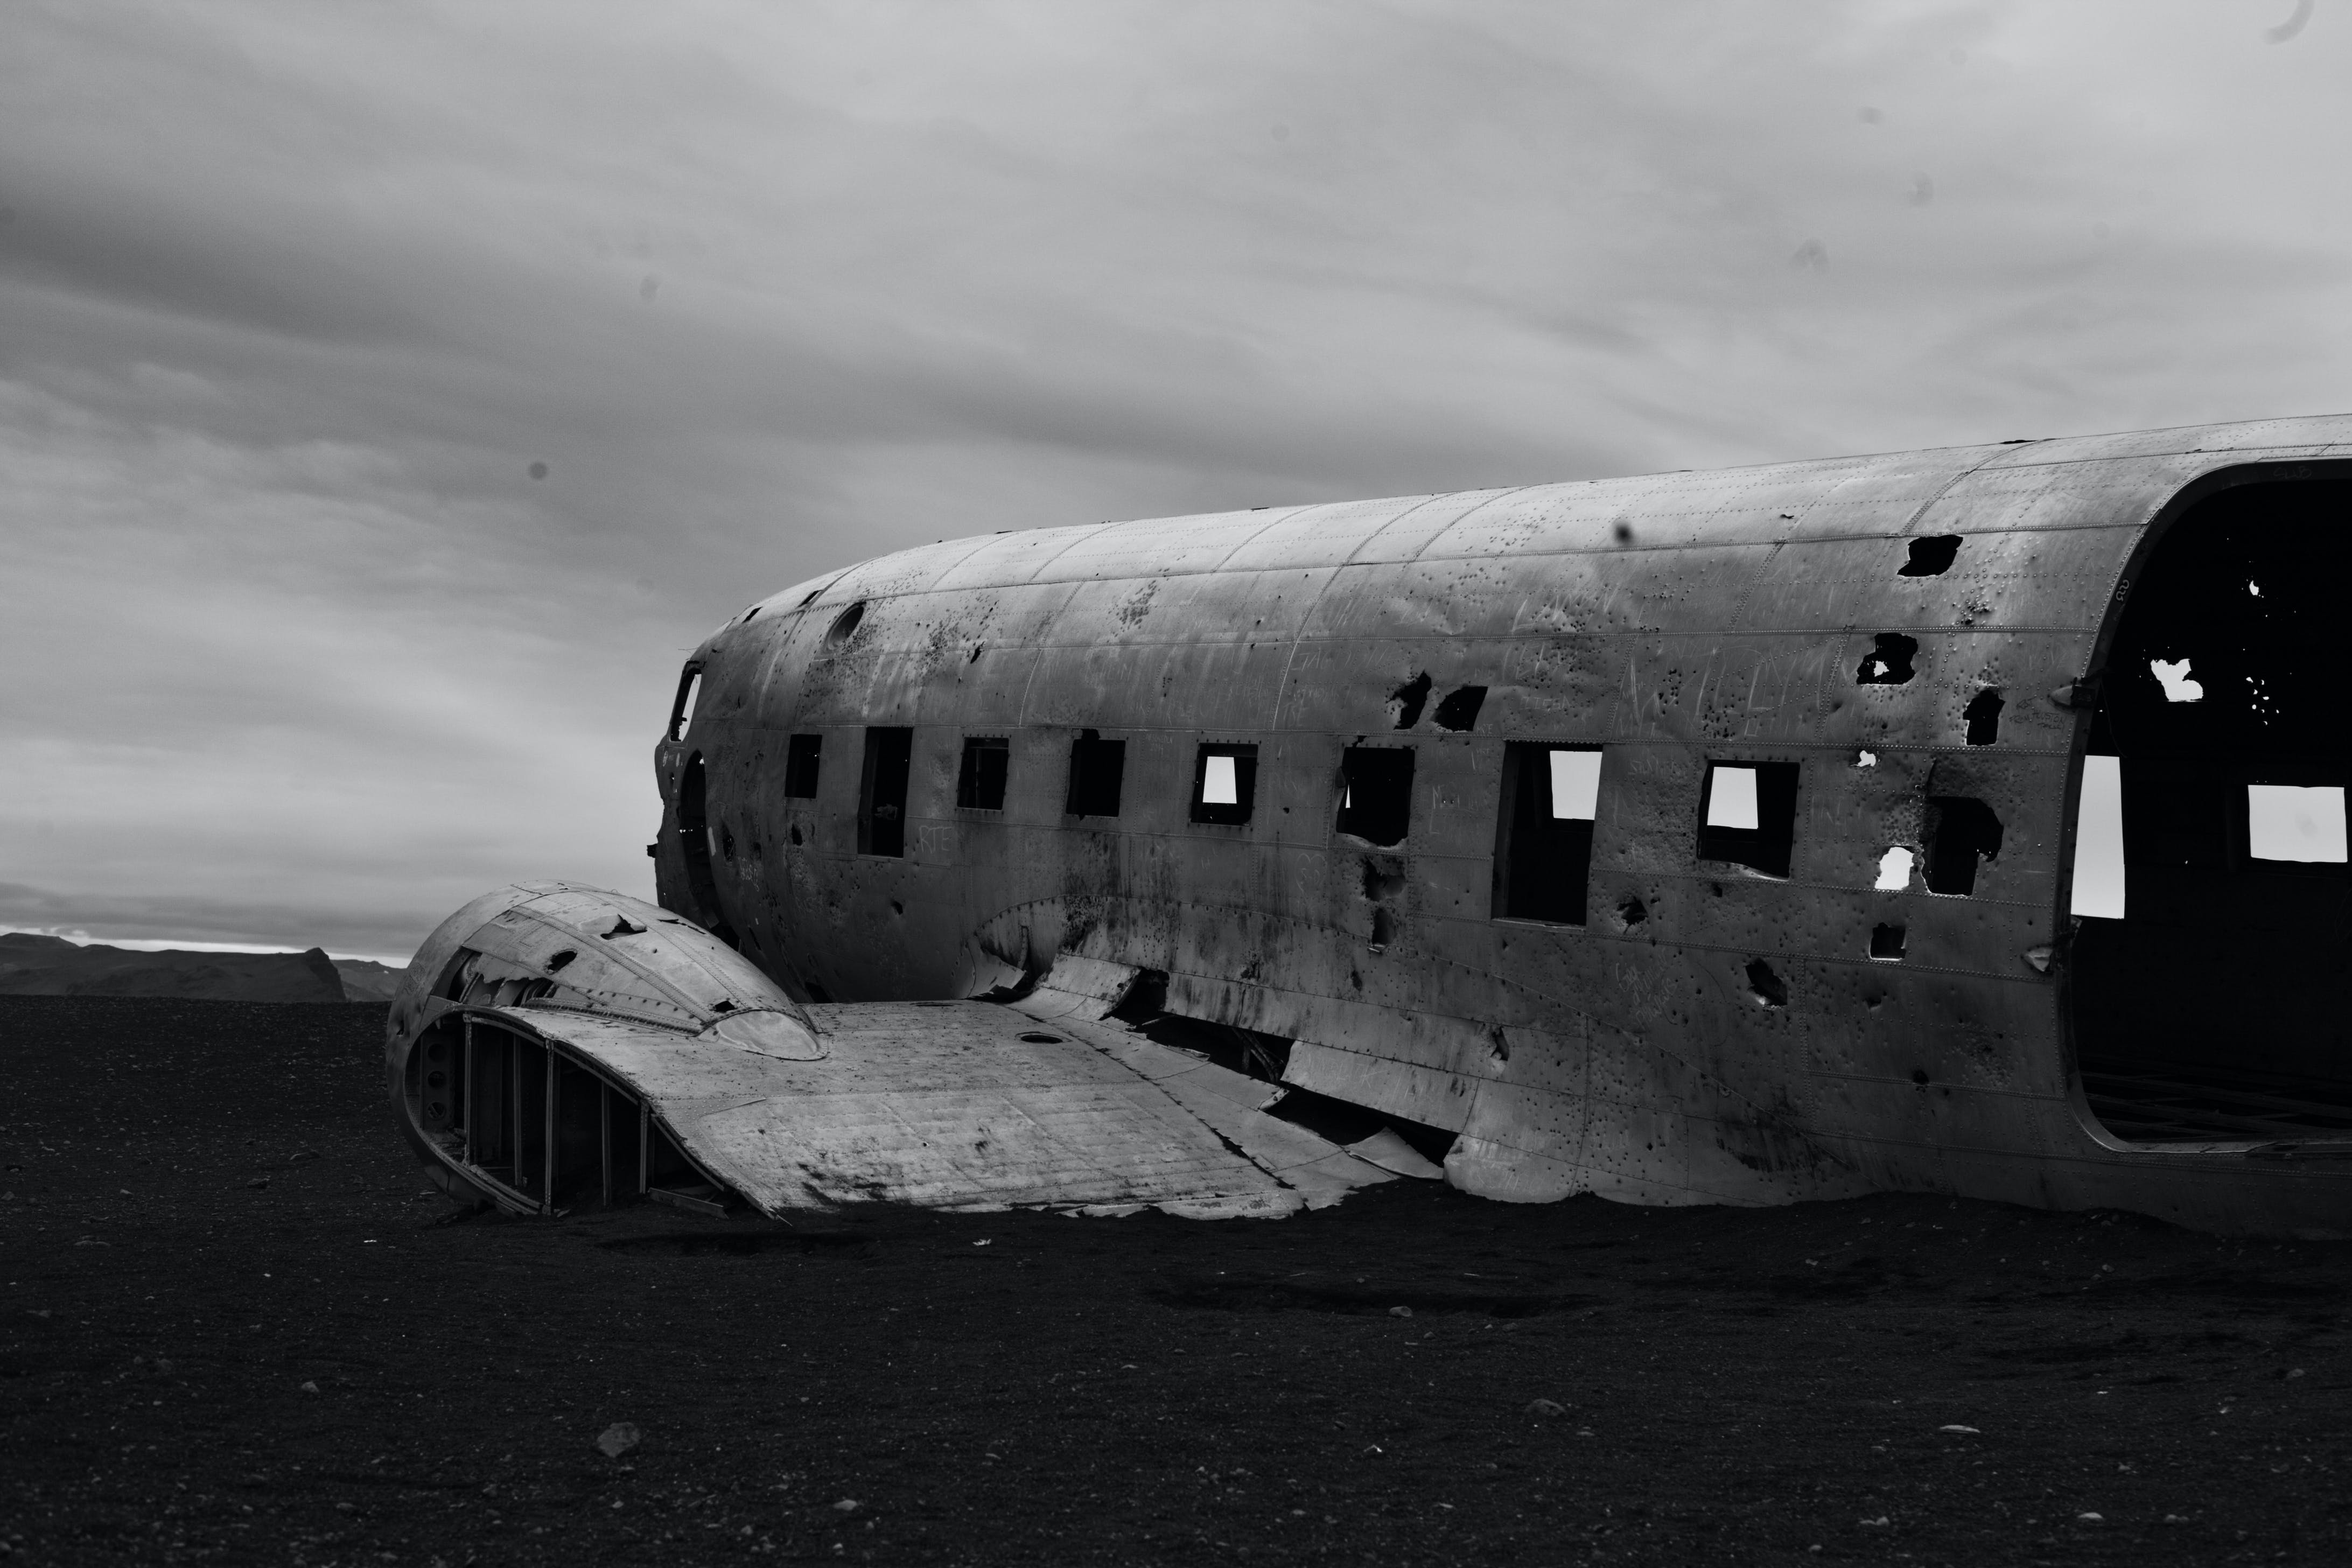 Wrecked Plane on Ground Grayscale Photography